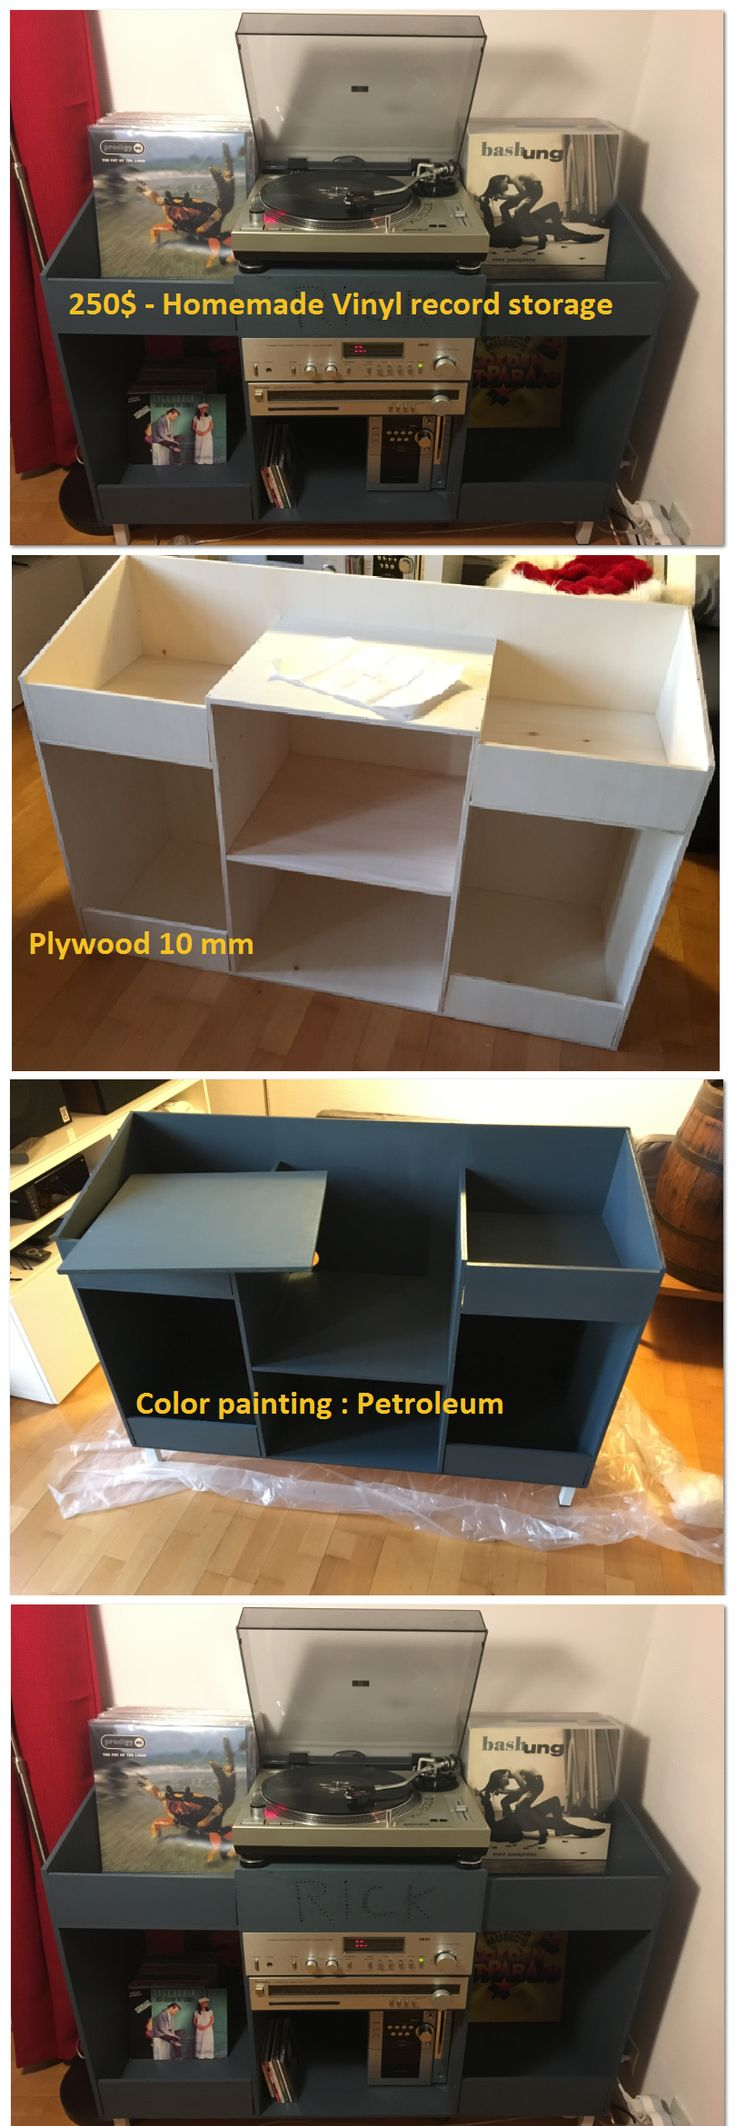 250$ cost homemade vinyl record storage, Plywood 10mm, Color painting : Petroleum, Contact : oudinet.jb@gmail.com